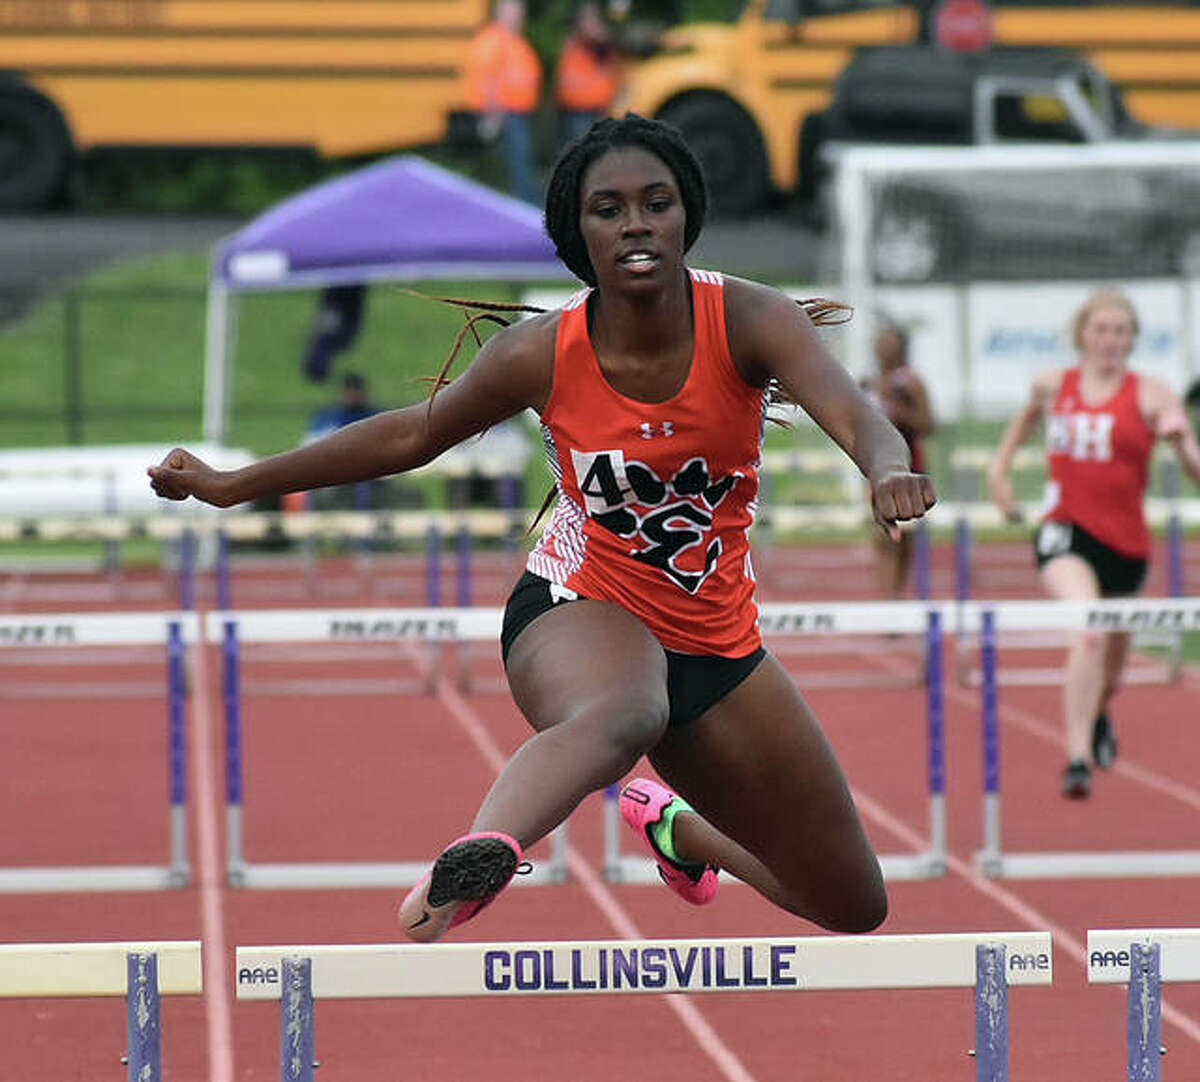 Edwardsville's Sydnee Campbell competes in the 300-meter hurdles during the Madison County Meet at Collinsville High School.